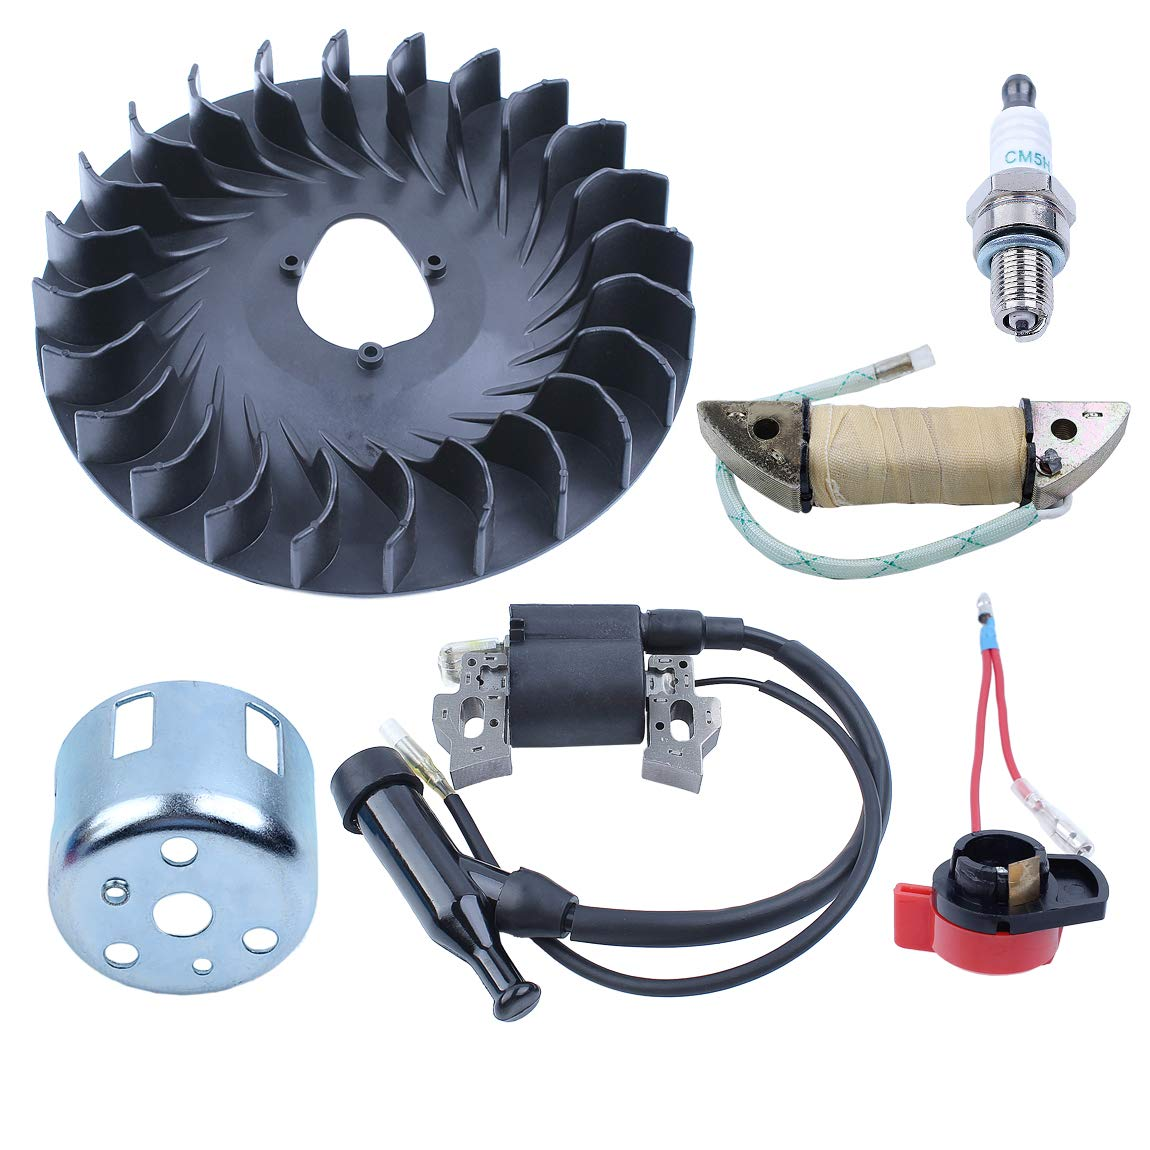 Haishine Flywheel Cooling Fan Ignition Charging Coil Starter Cup Kit for Honda GX160 GX200 Chinese 168F 170F Trimmer Small Engine Motor